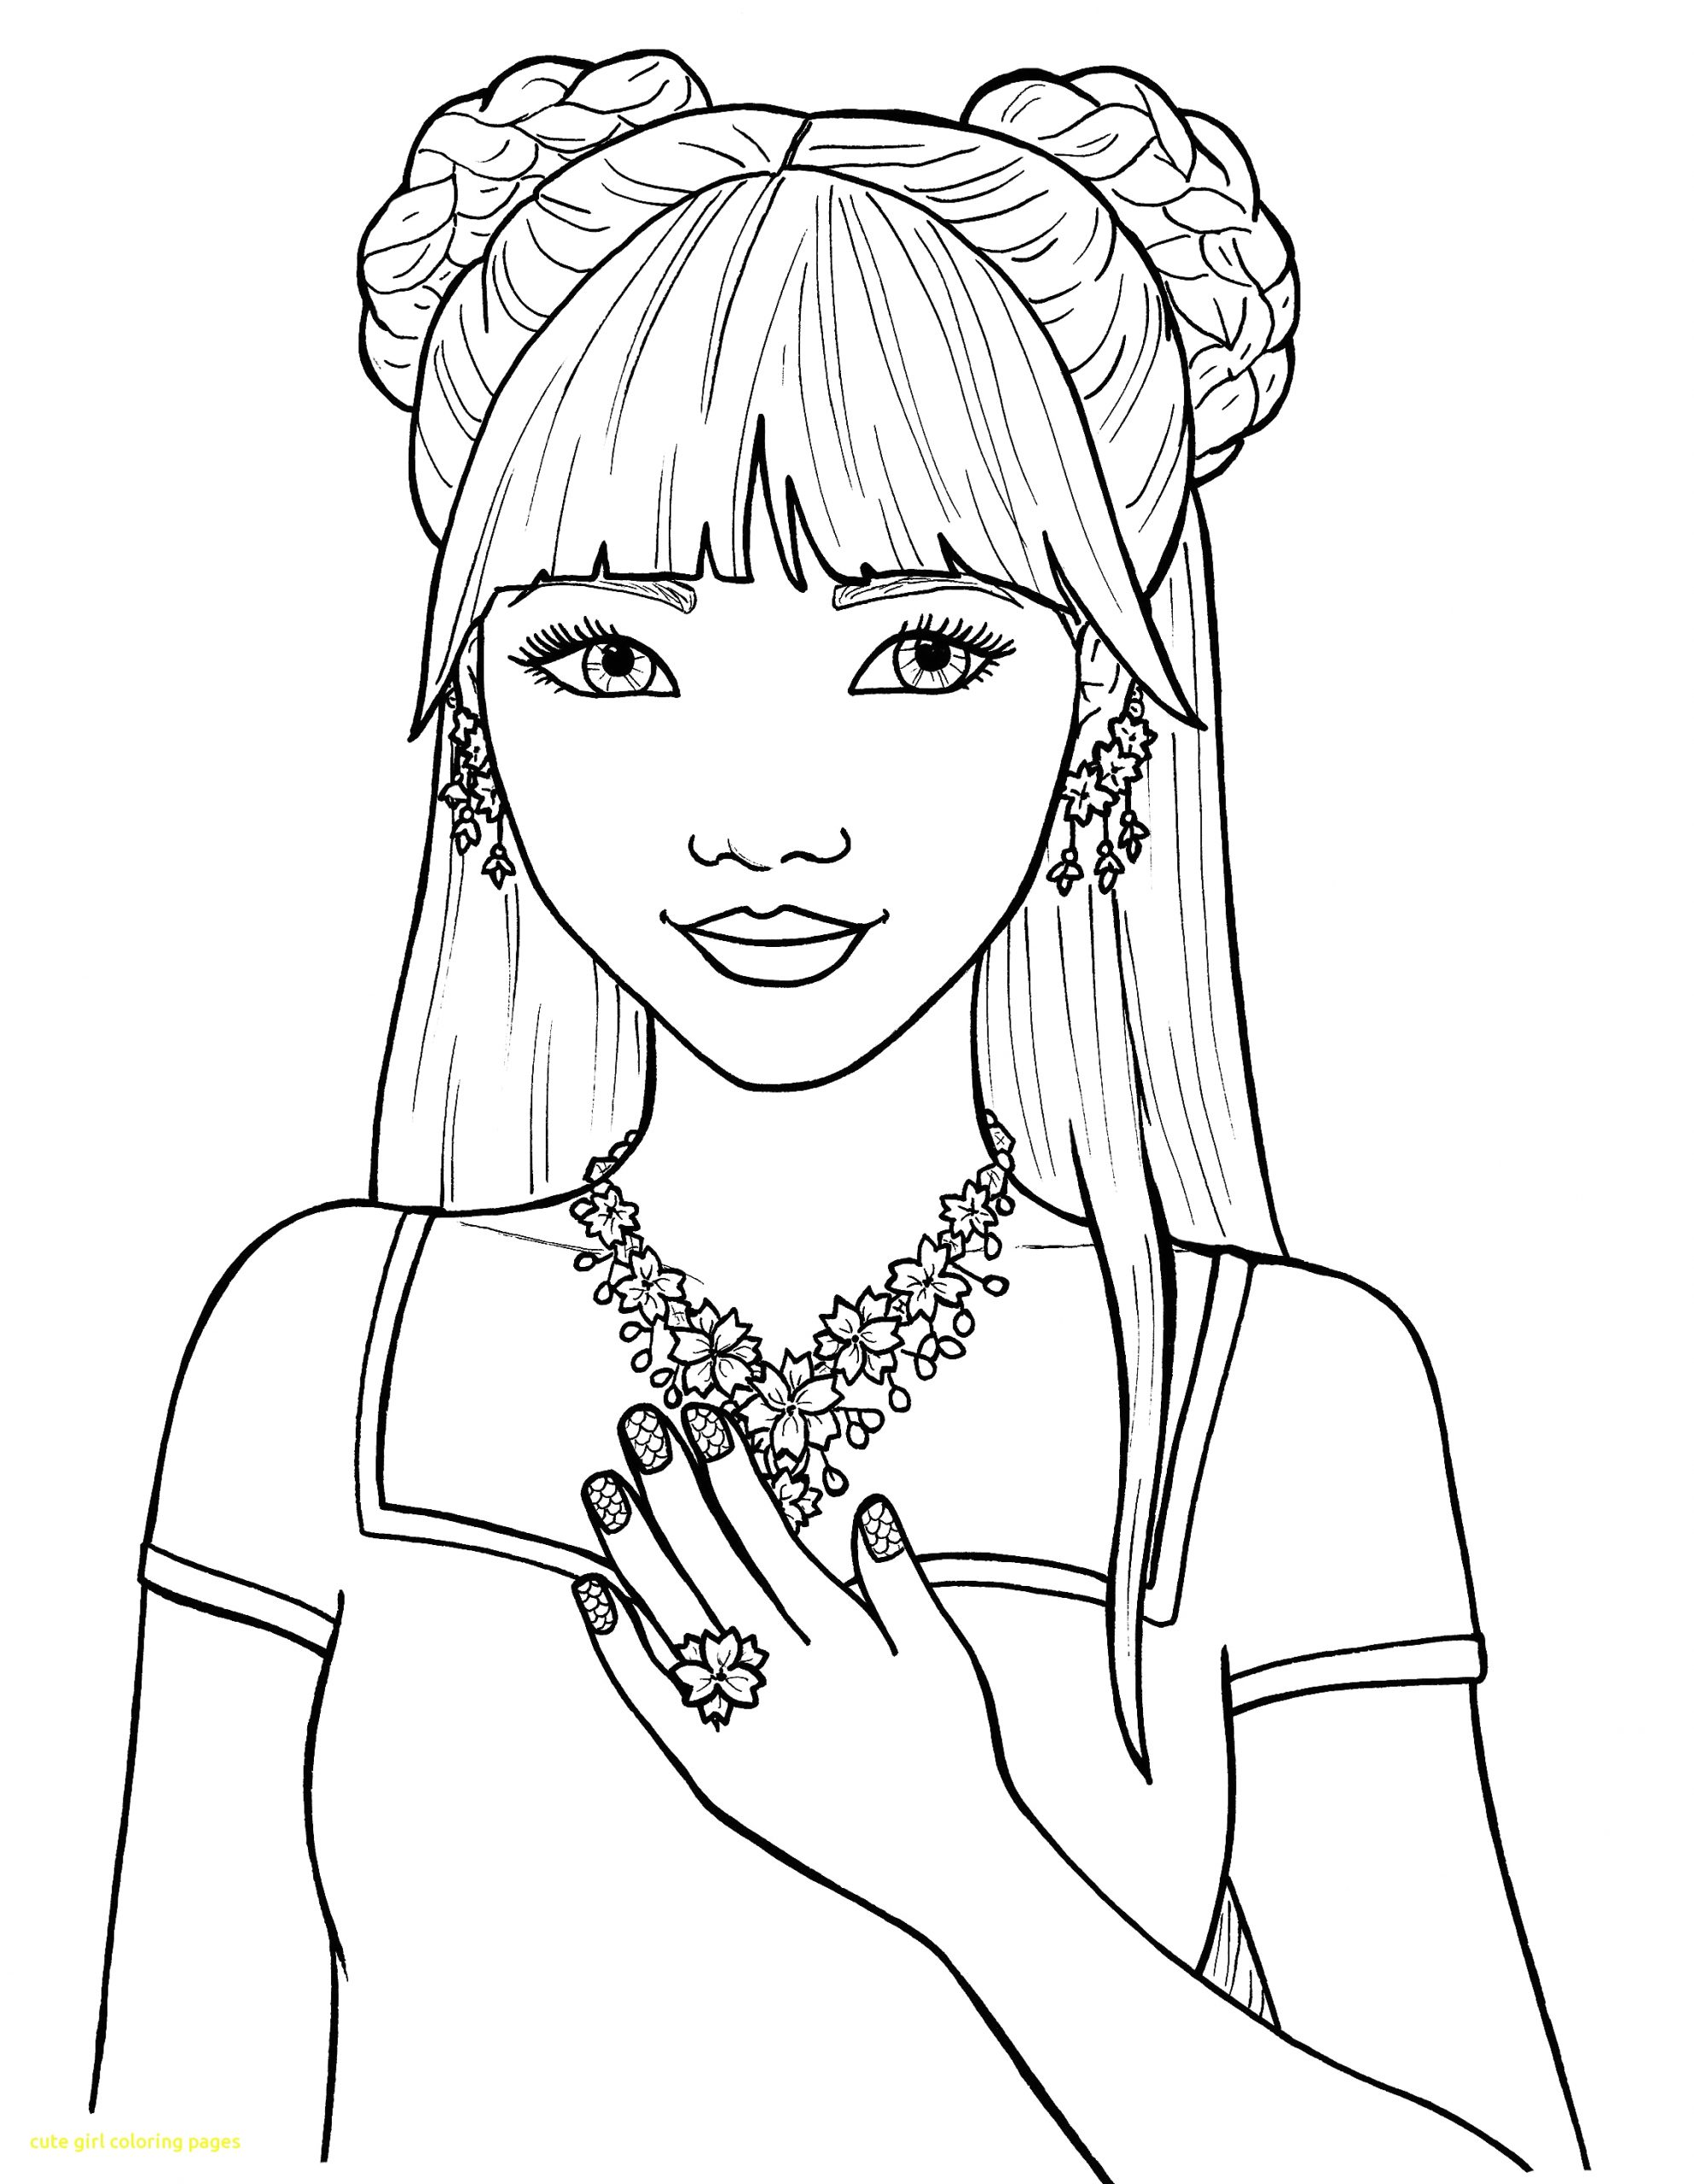 Coloring Pages for Girls to Print Out Coloring Pages for Girls Best Coloring Pages for Kids